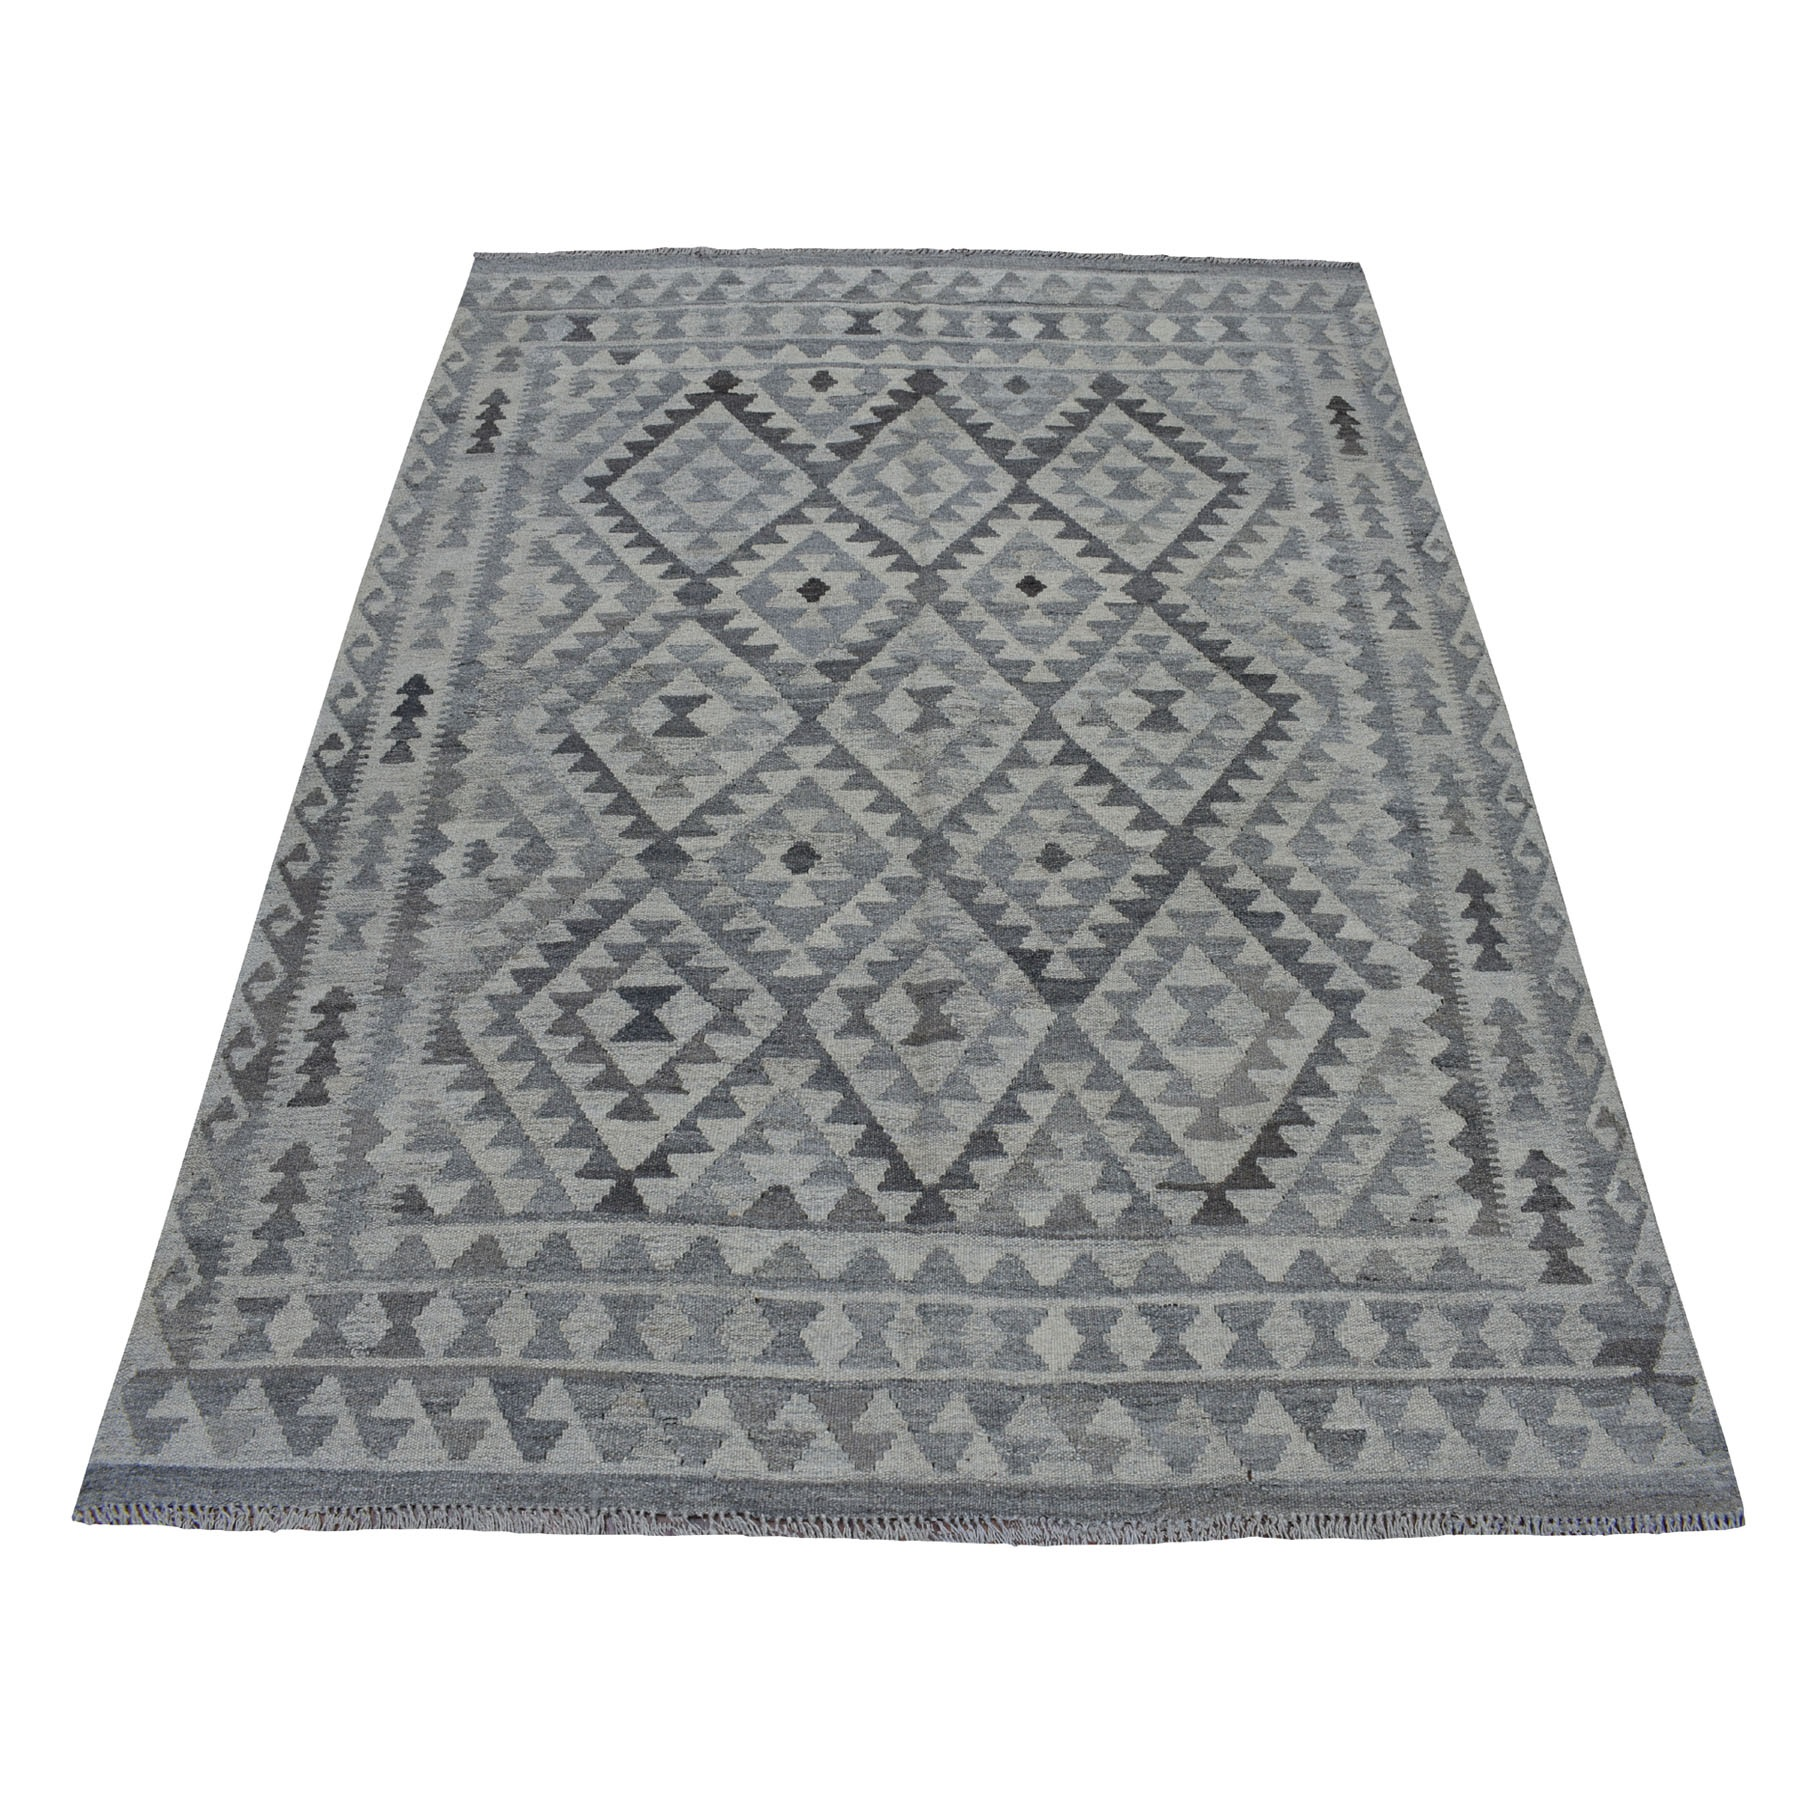 """5'3""""X6'5"""" Undyed Natural Wool Afghan Kilim Reversible Hand Woven Oriental Rug moaec0ad"""